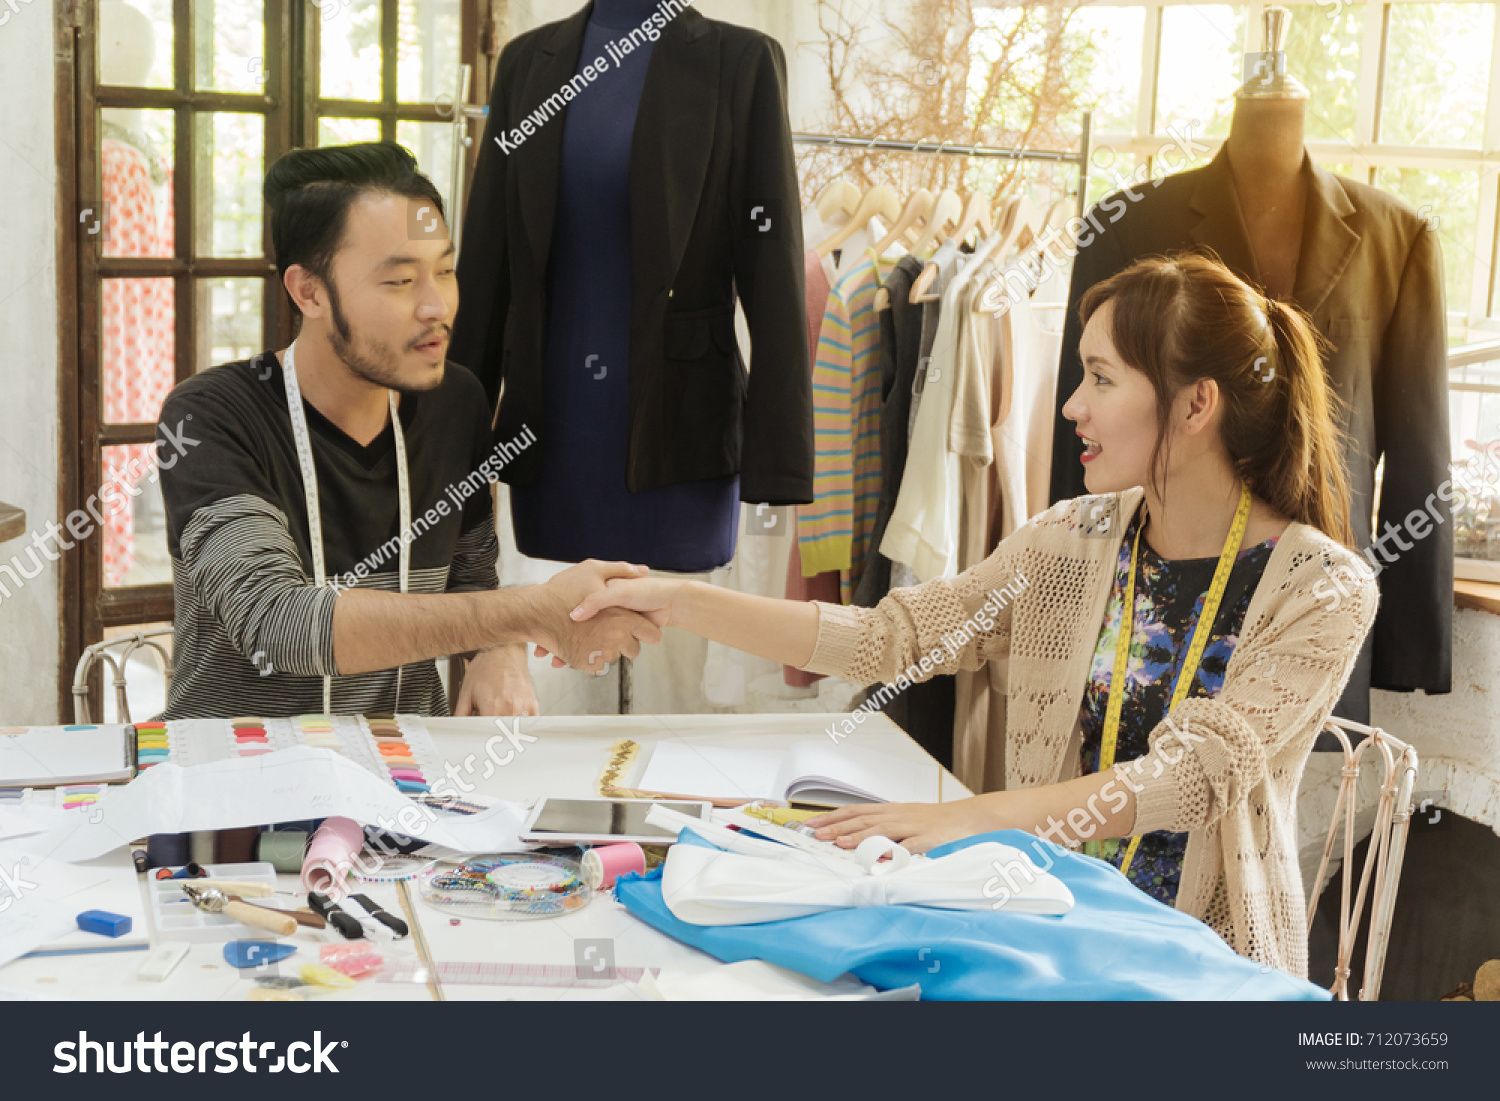 Two Asian Young Fashion Designer Handshake Stock Photo Edit Now On The Table At Studio Cooperation Between